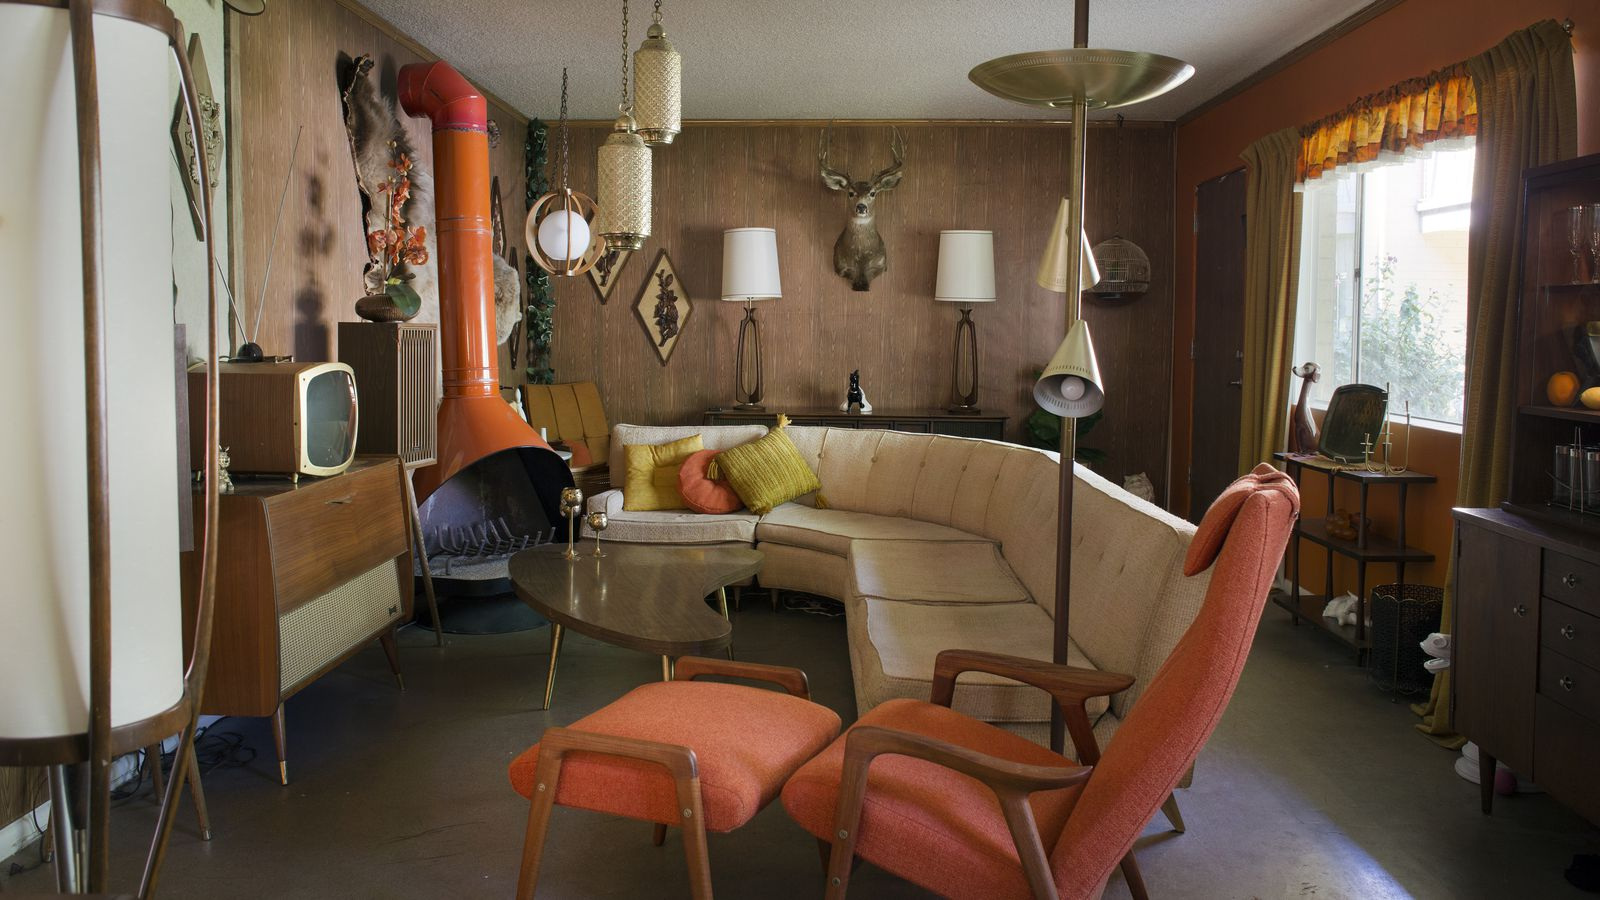 A Millennial In Love With Midcentury Modernism Creates